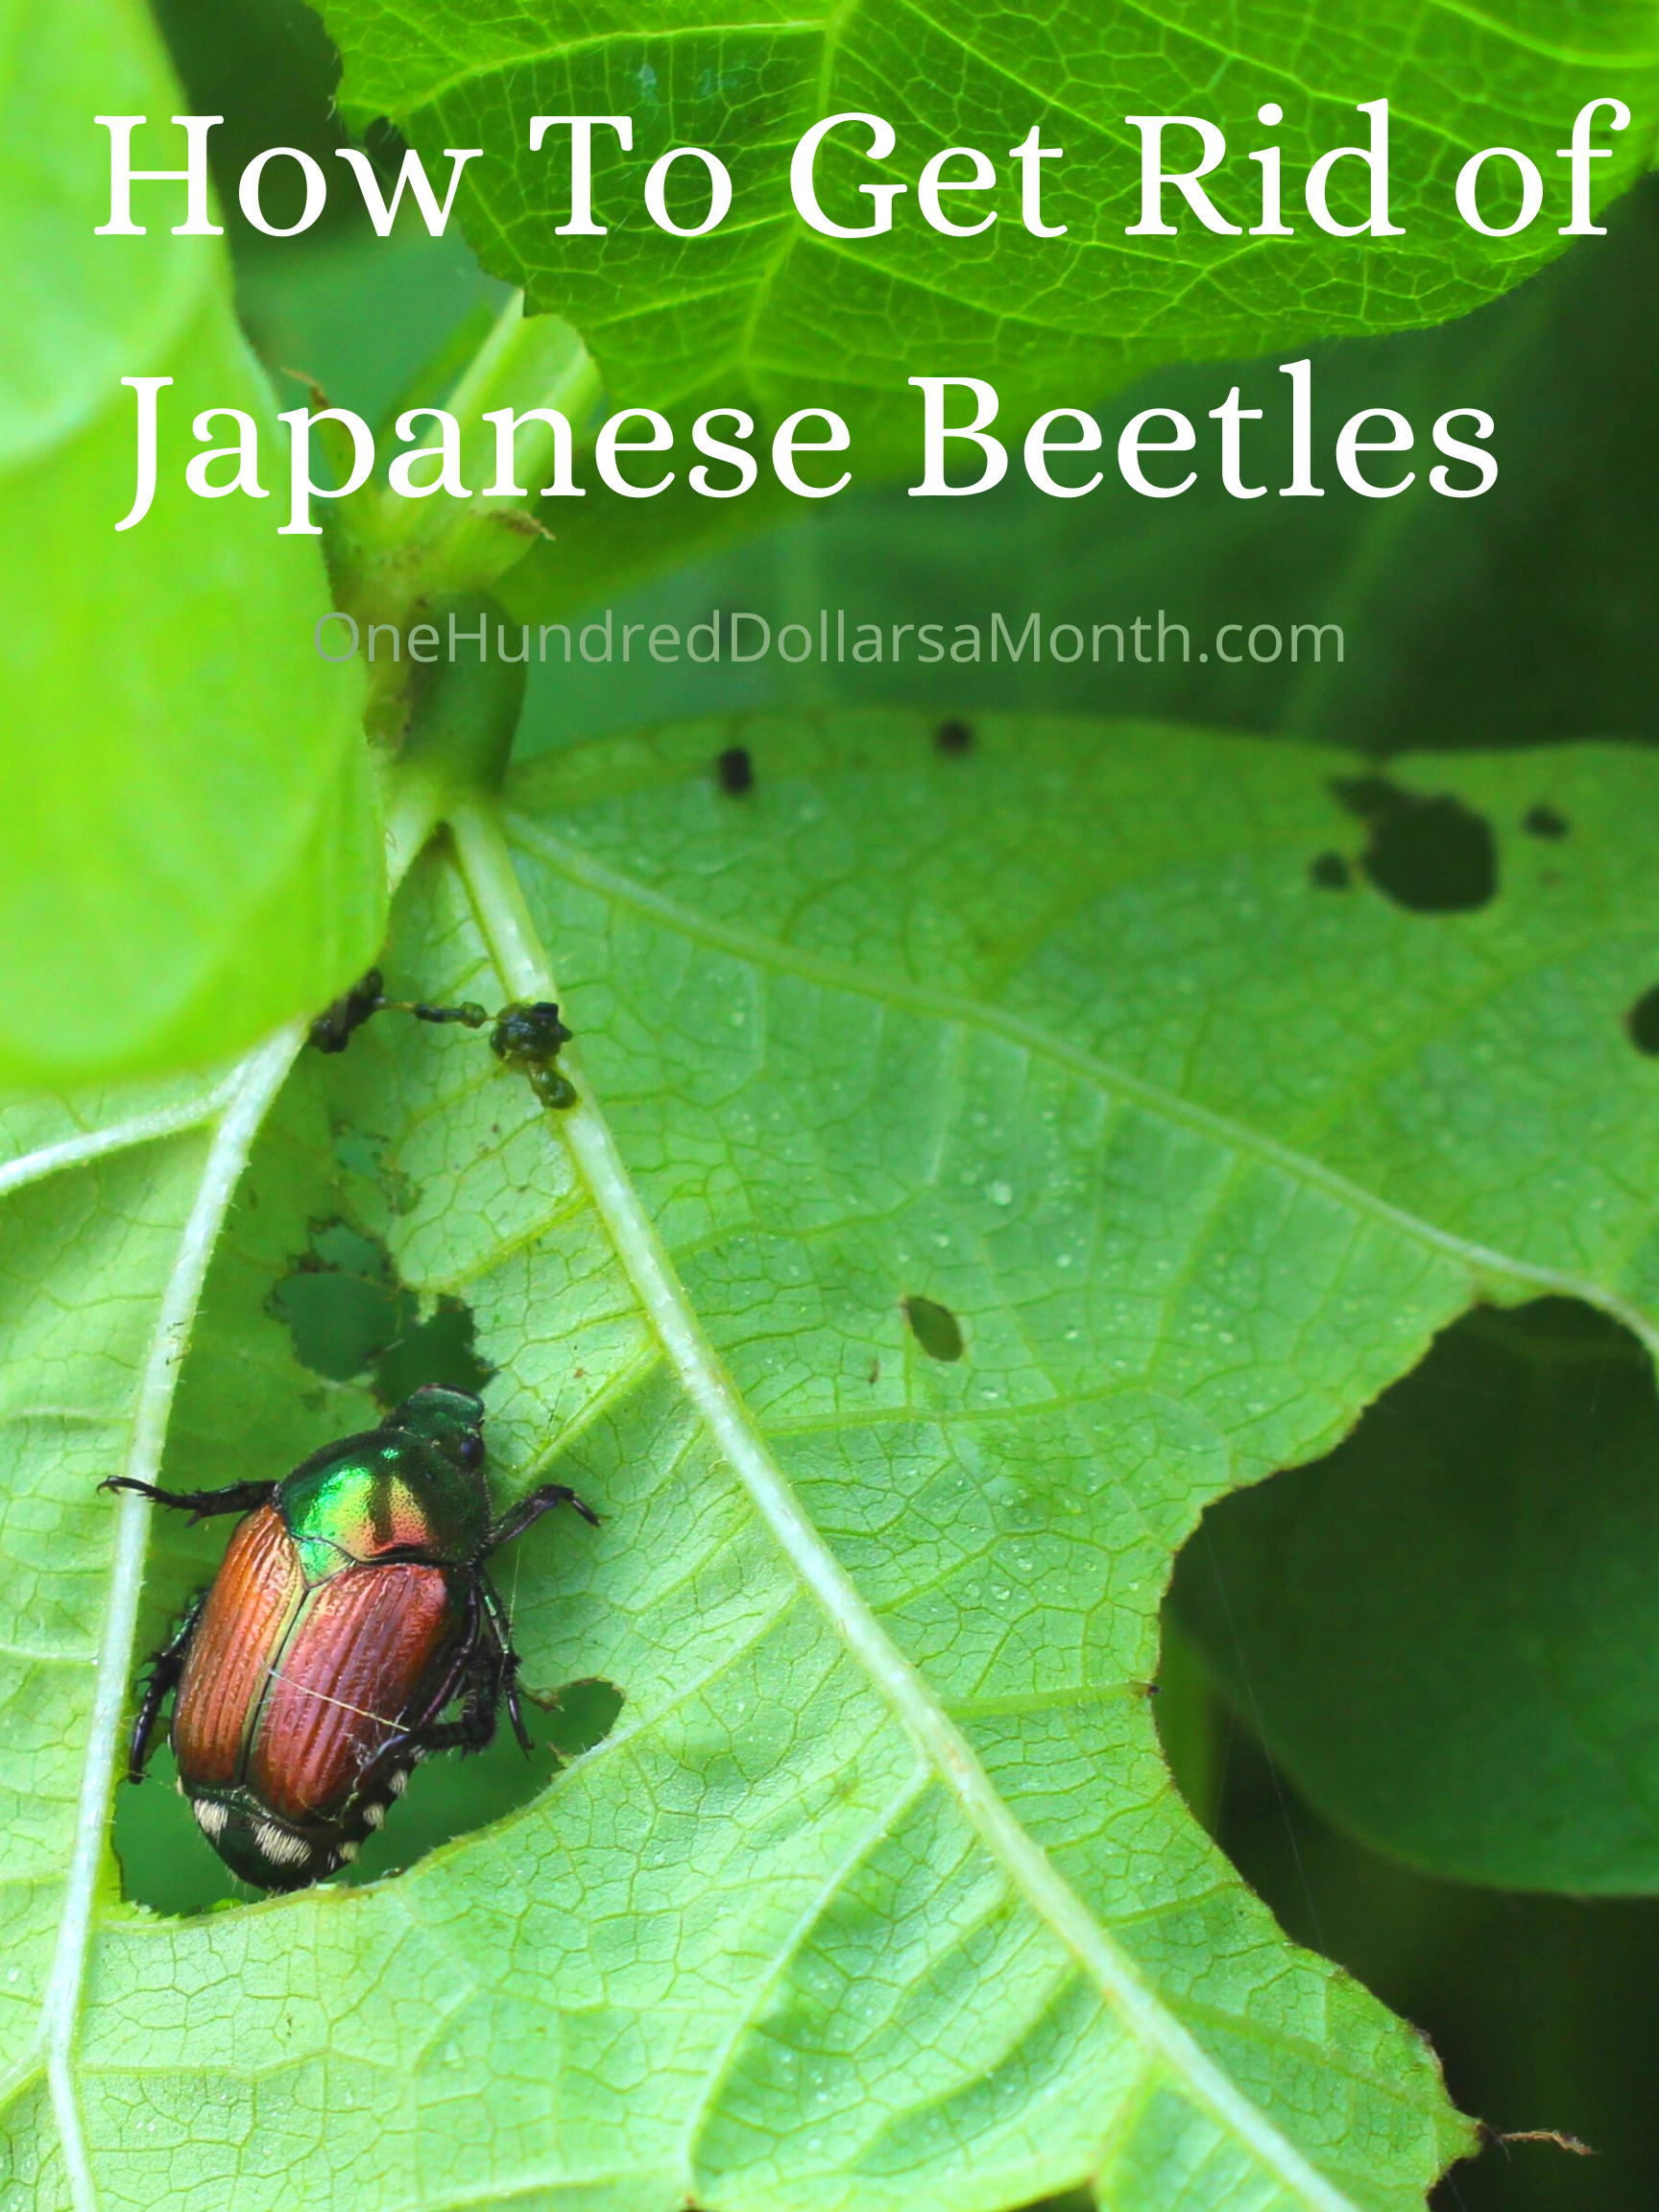 How To Get Rid of Japanese Beetles – 9 Proven Tricks From Readers